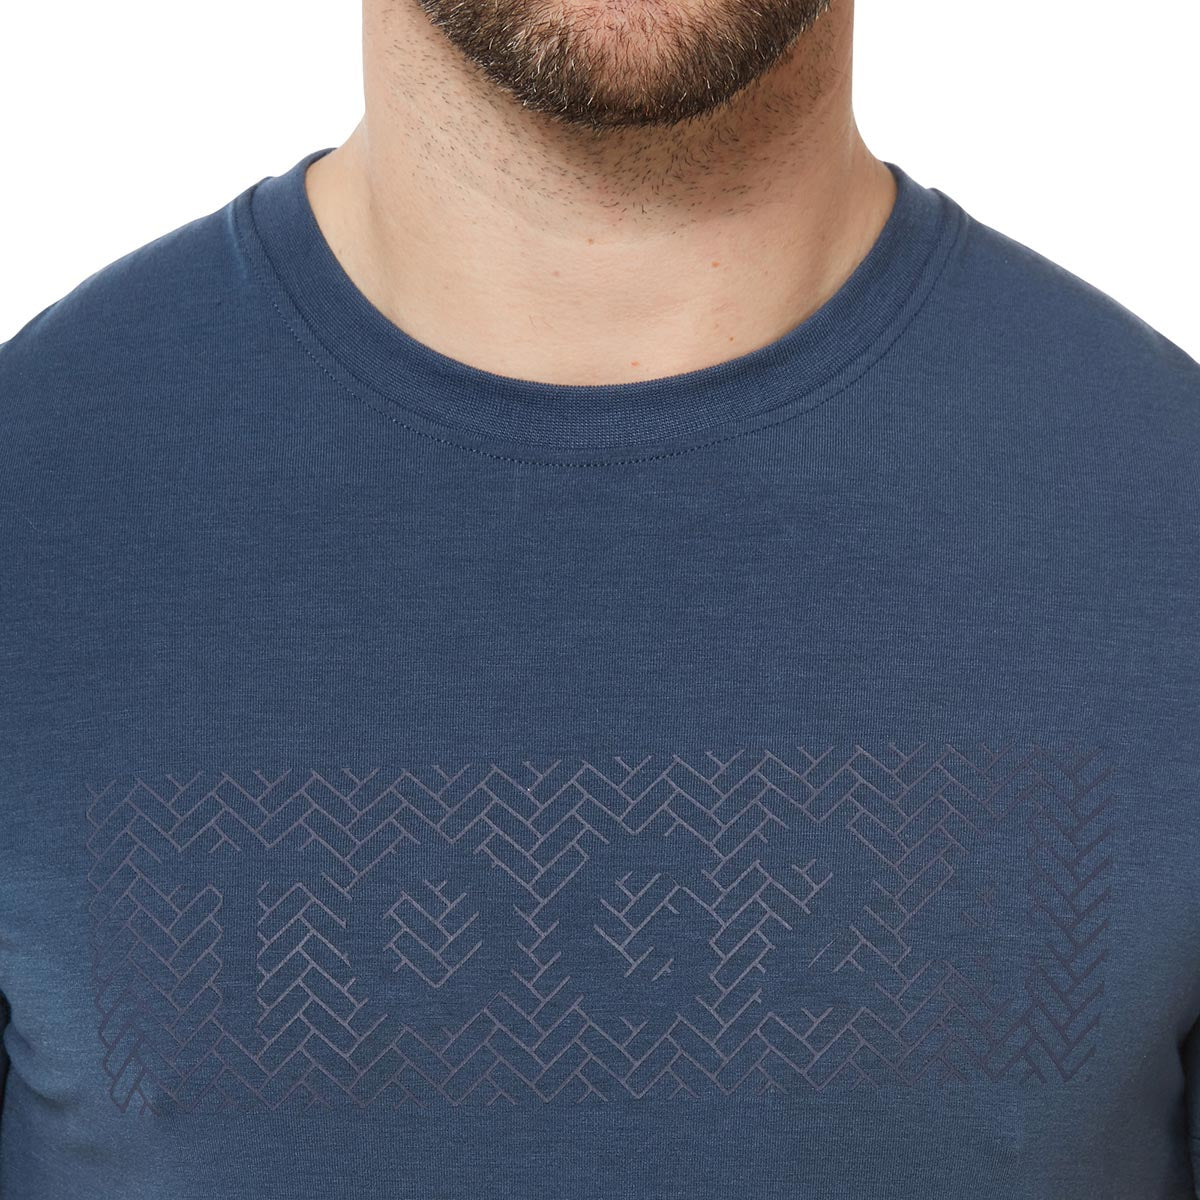 Towler Mens Performance Graphic T-Shirt - Denim image 4